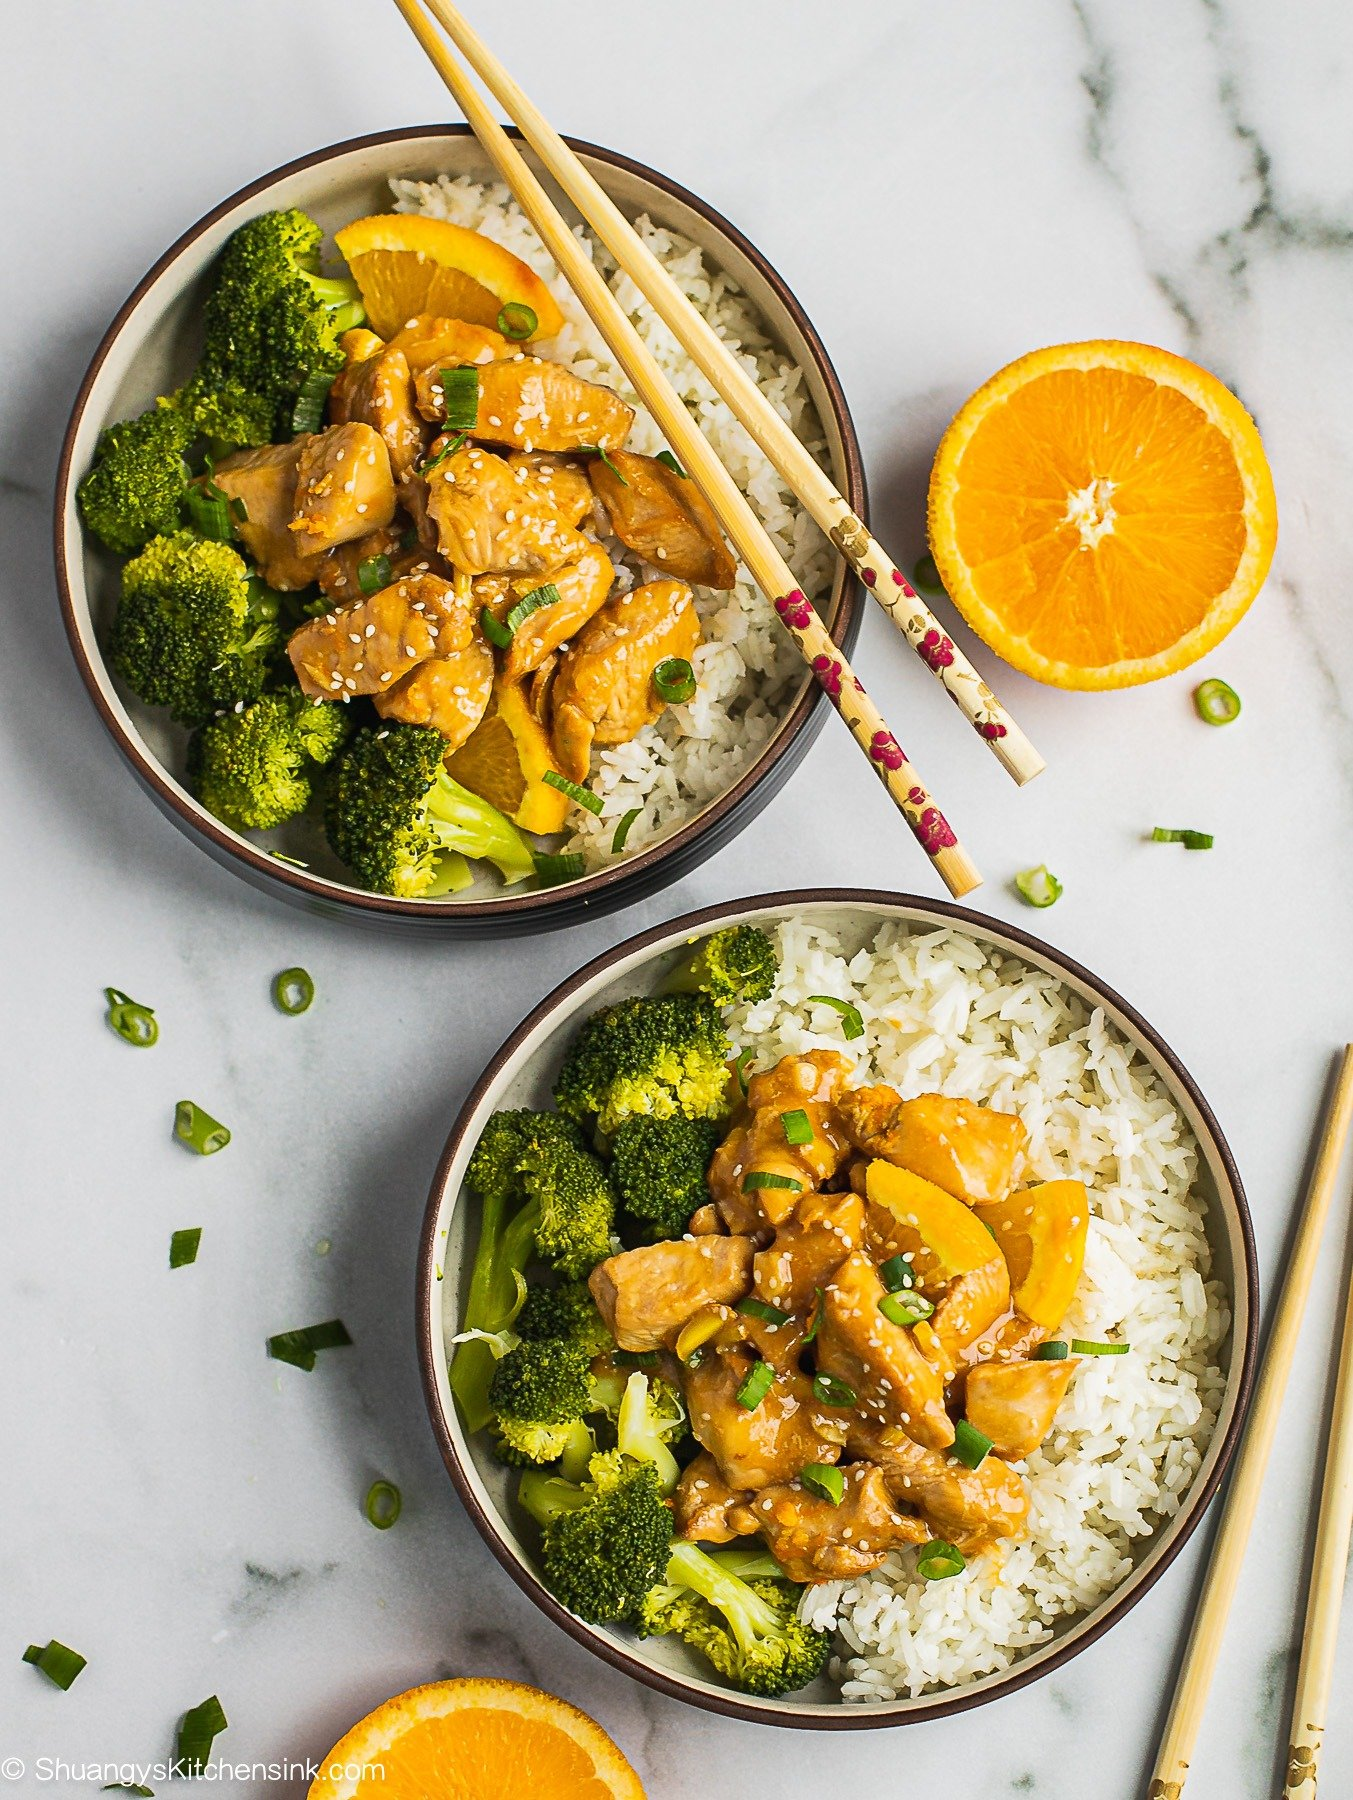 Two bowls of paleo orange chicken over rice and steamed broccoli. There is a pair of chopsticks on the bowl. There are a piece of orange slice in on the table.